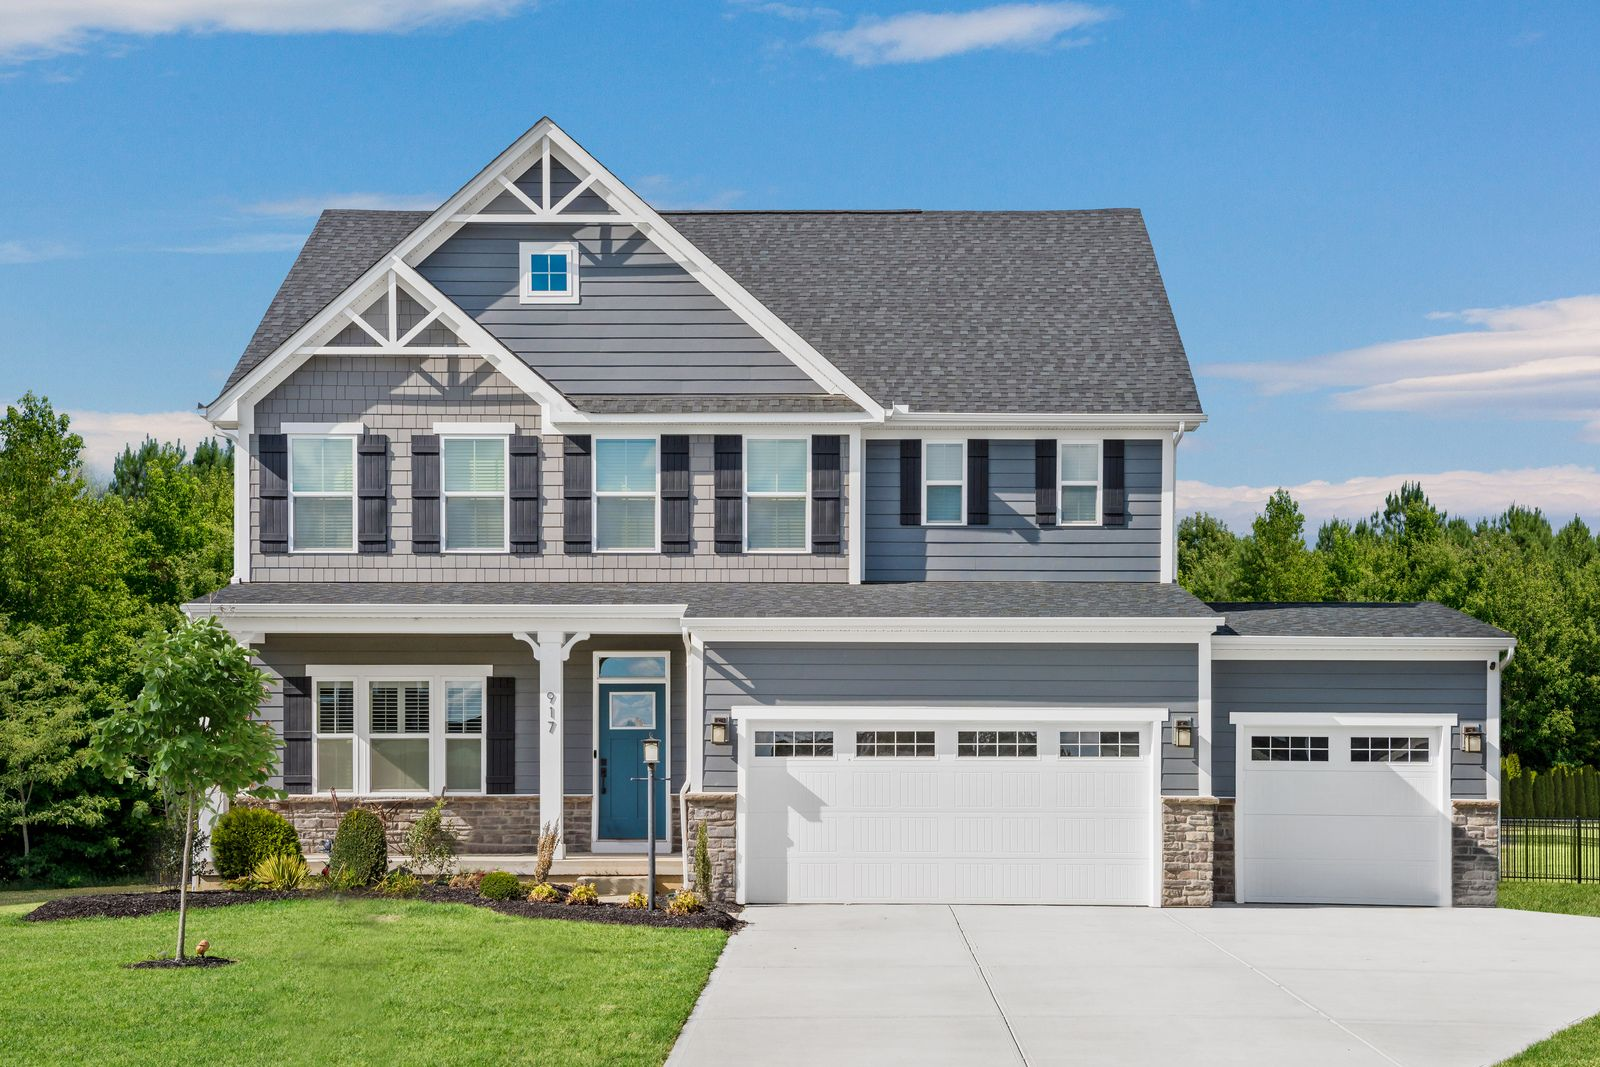 Turnberry: New Homes with Luxury Choices in Fishers:Enjoy included features such as 3-car garages, basements, and upgrades throughout. In the Hamilton Southeastern School District.Click here to secure your homesite in our new section.